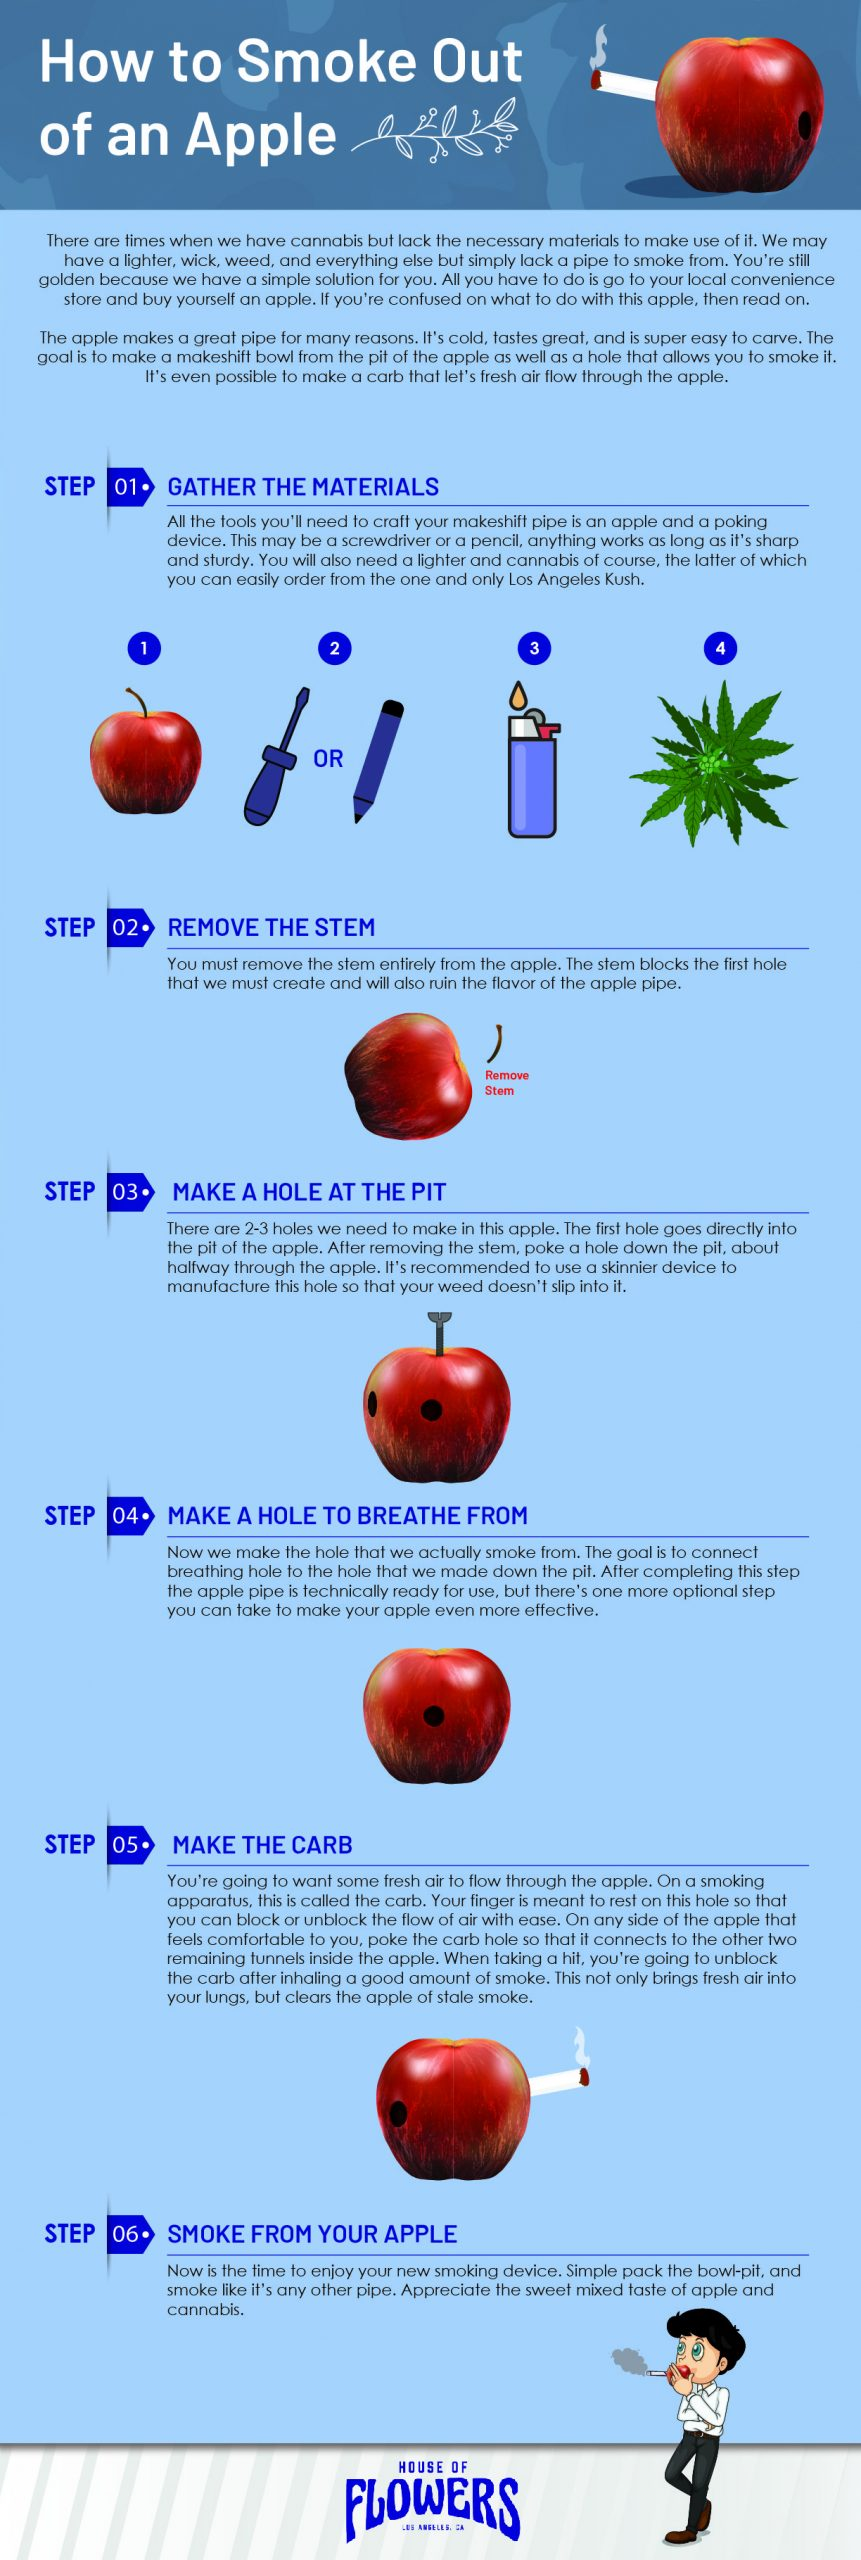 an infographic describing how to smoke out of an apple